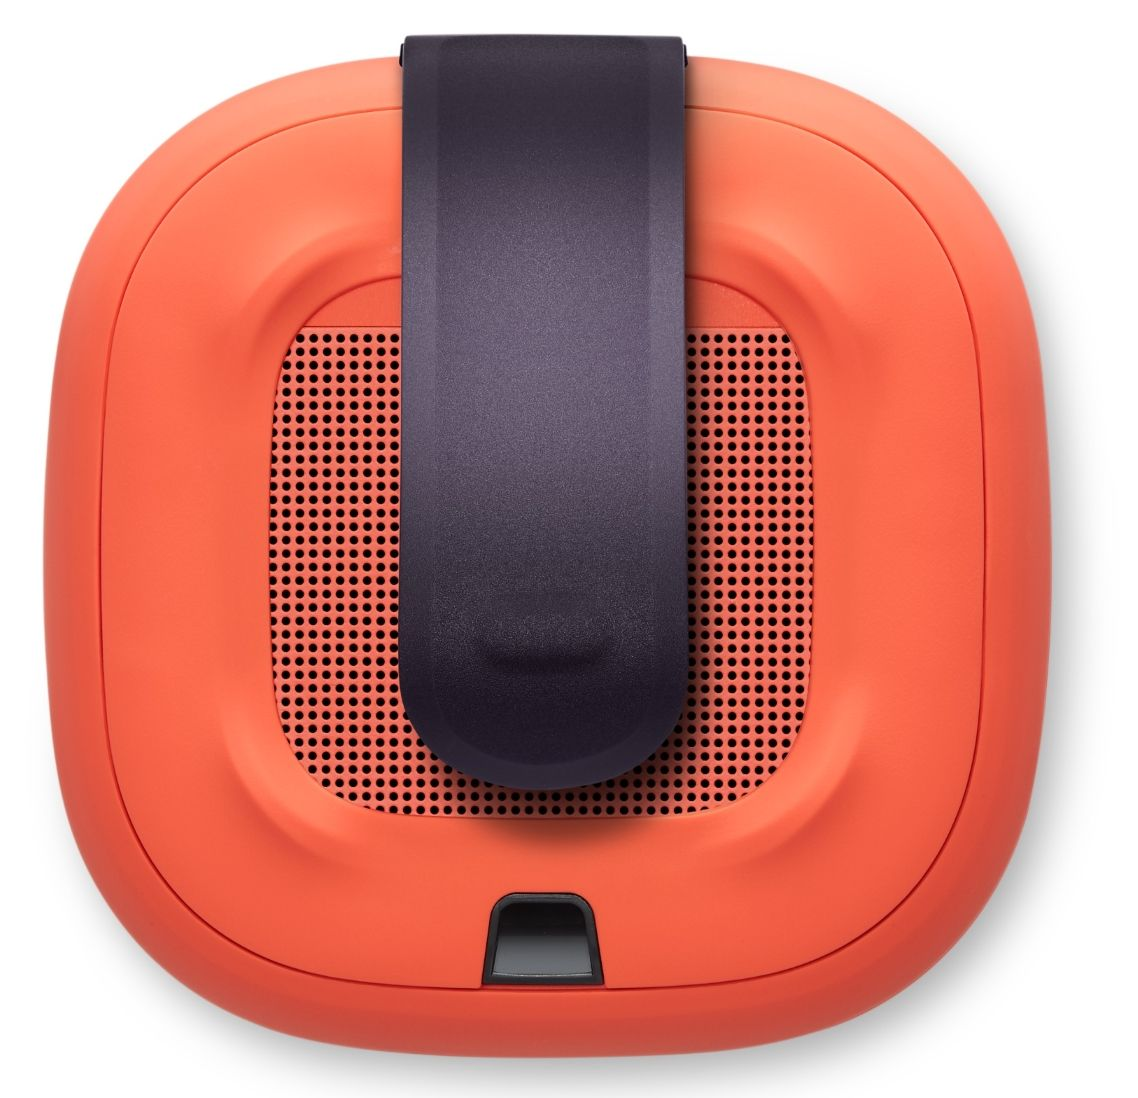 BOSE SoundLink Micro - Orange, картинка 4